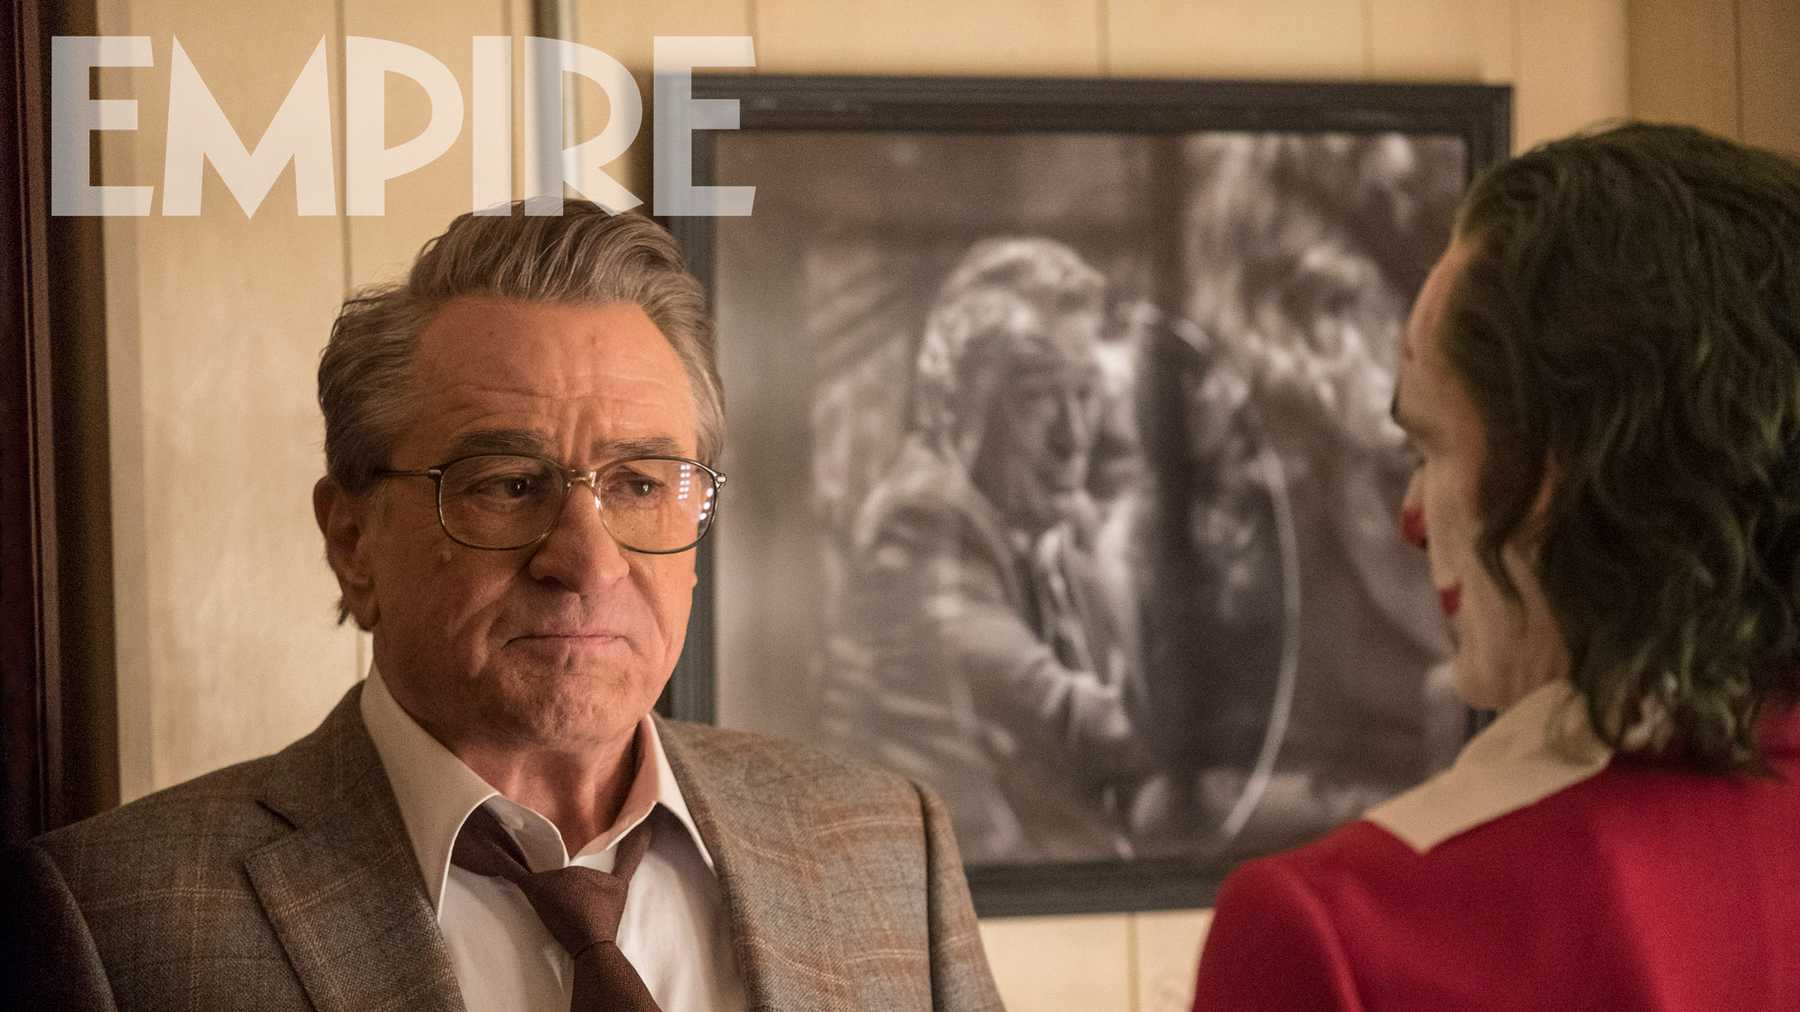 joker-exclusive-de-niro